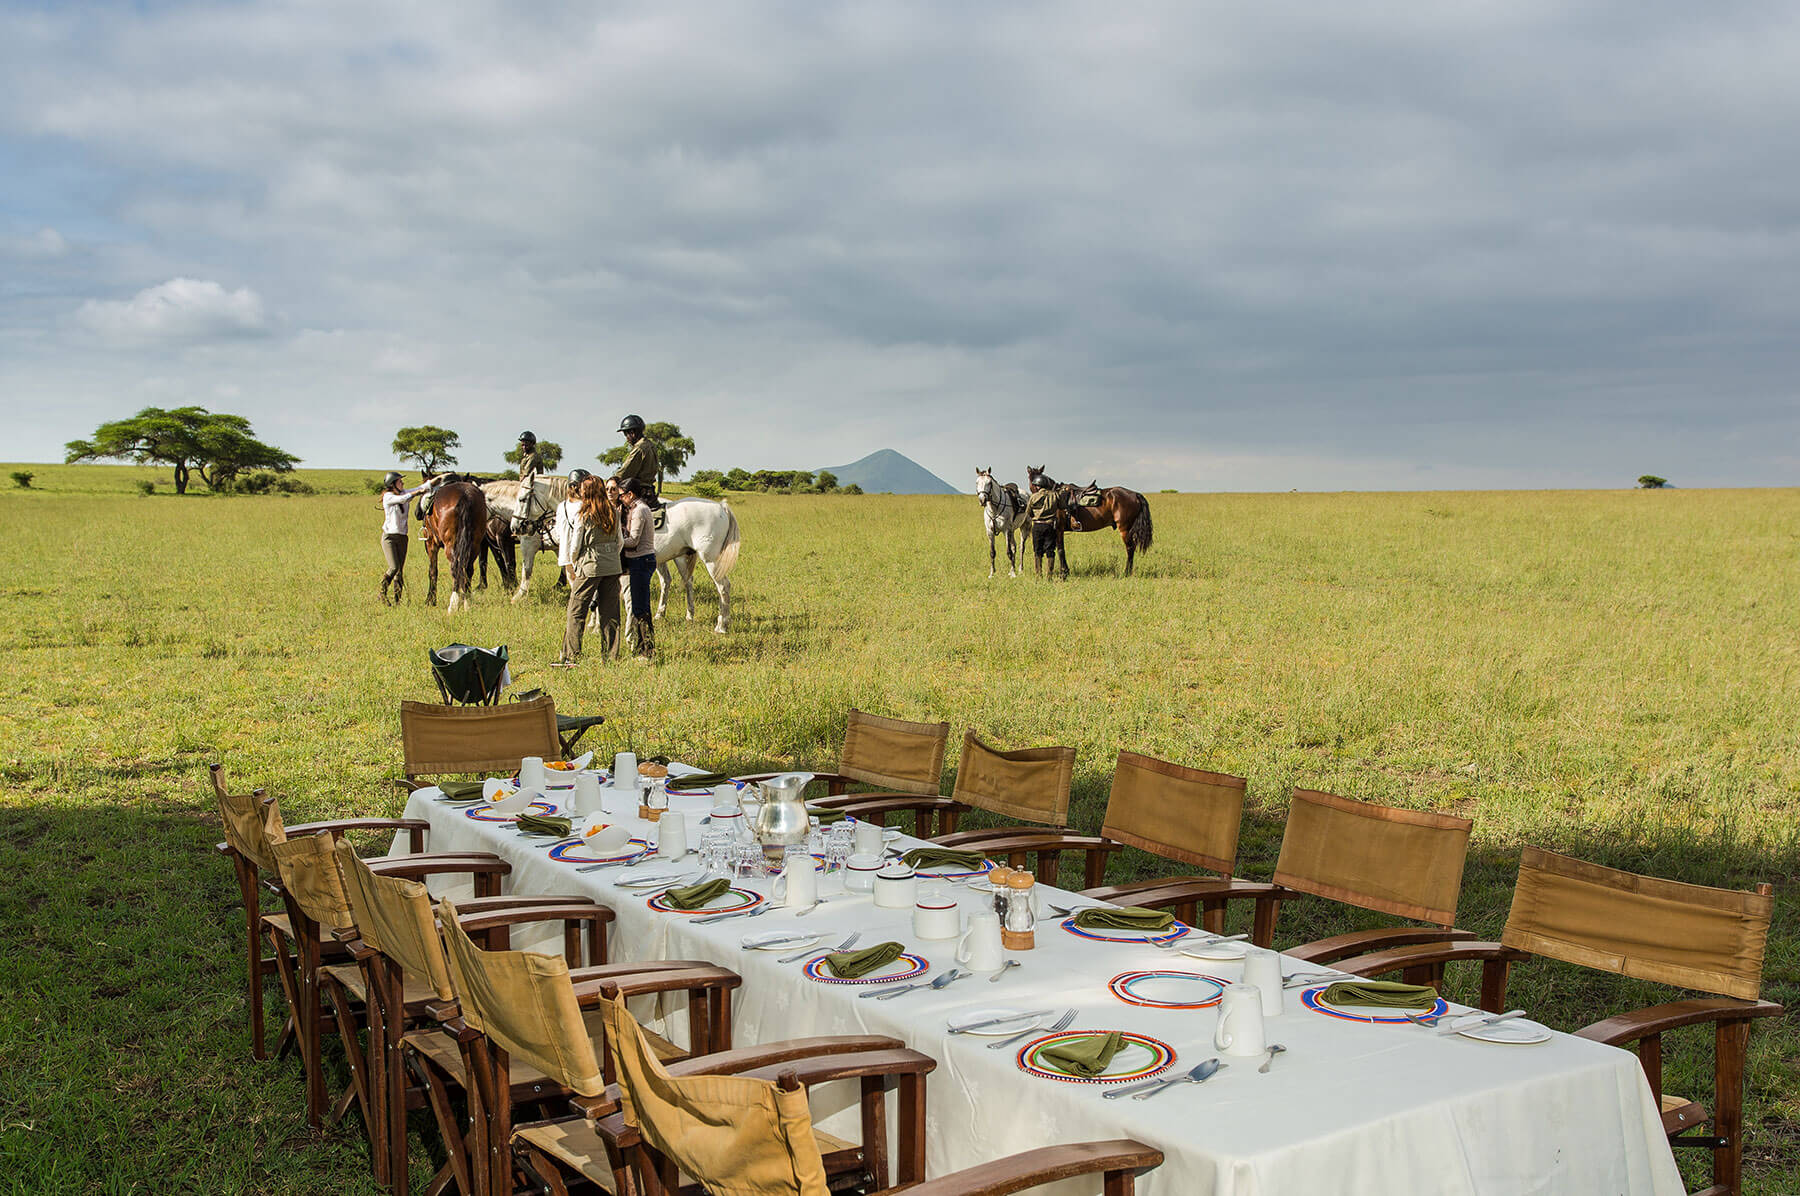 Horseback Safari in Africa